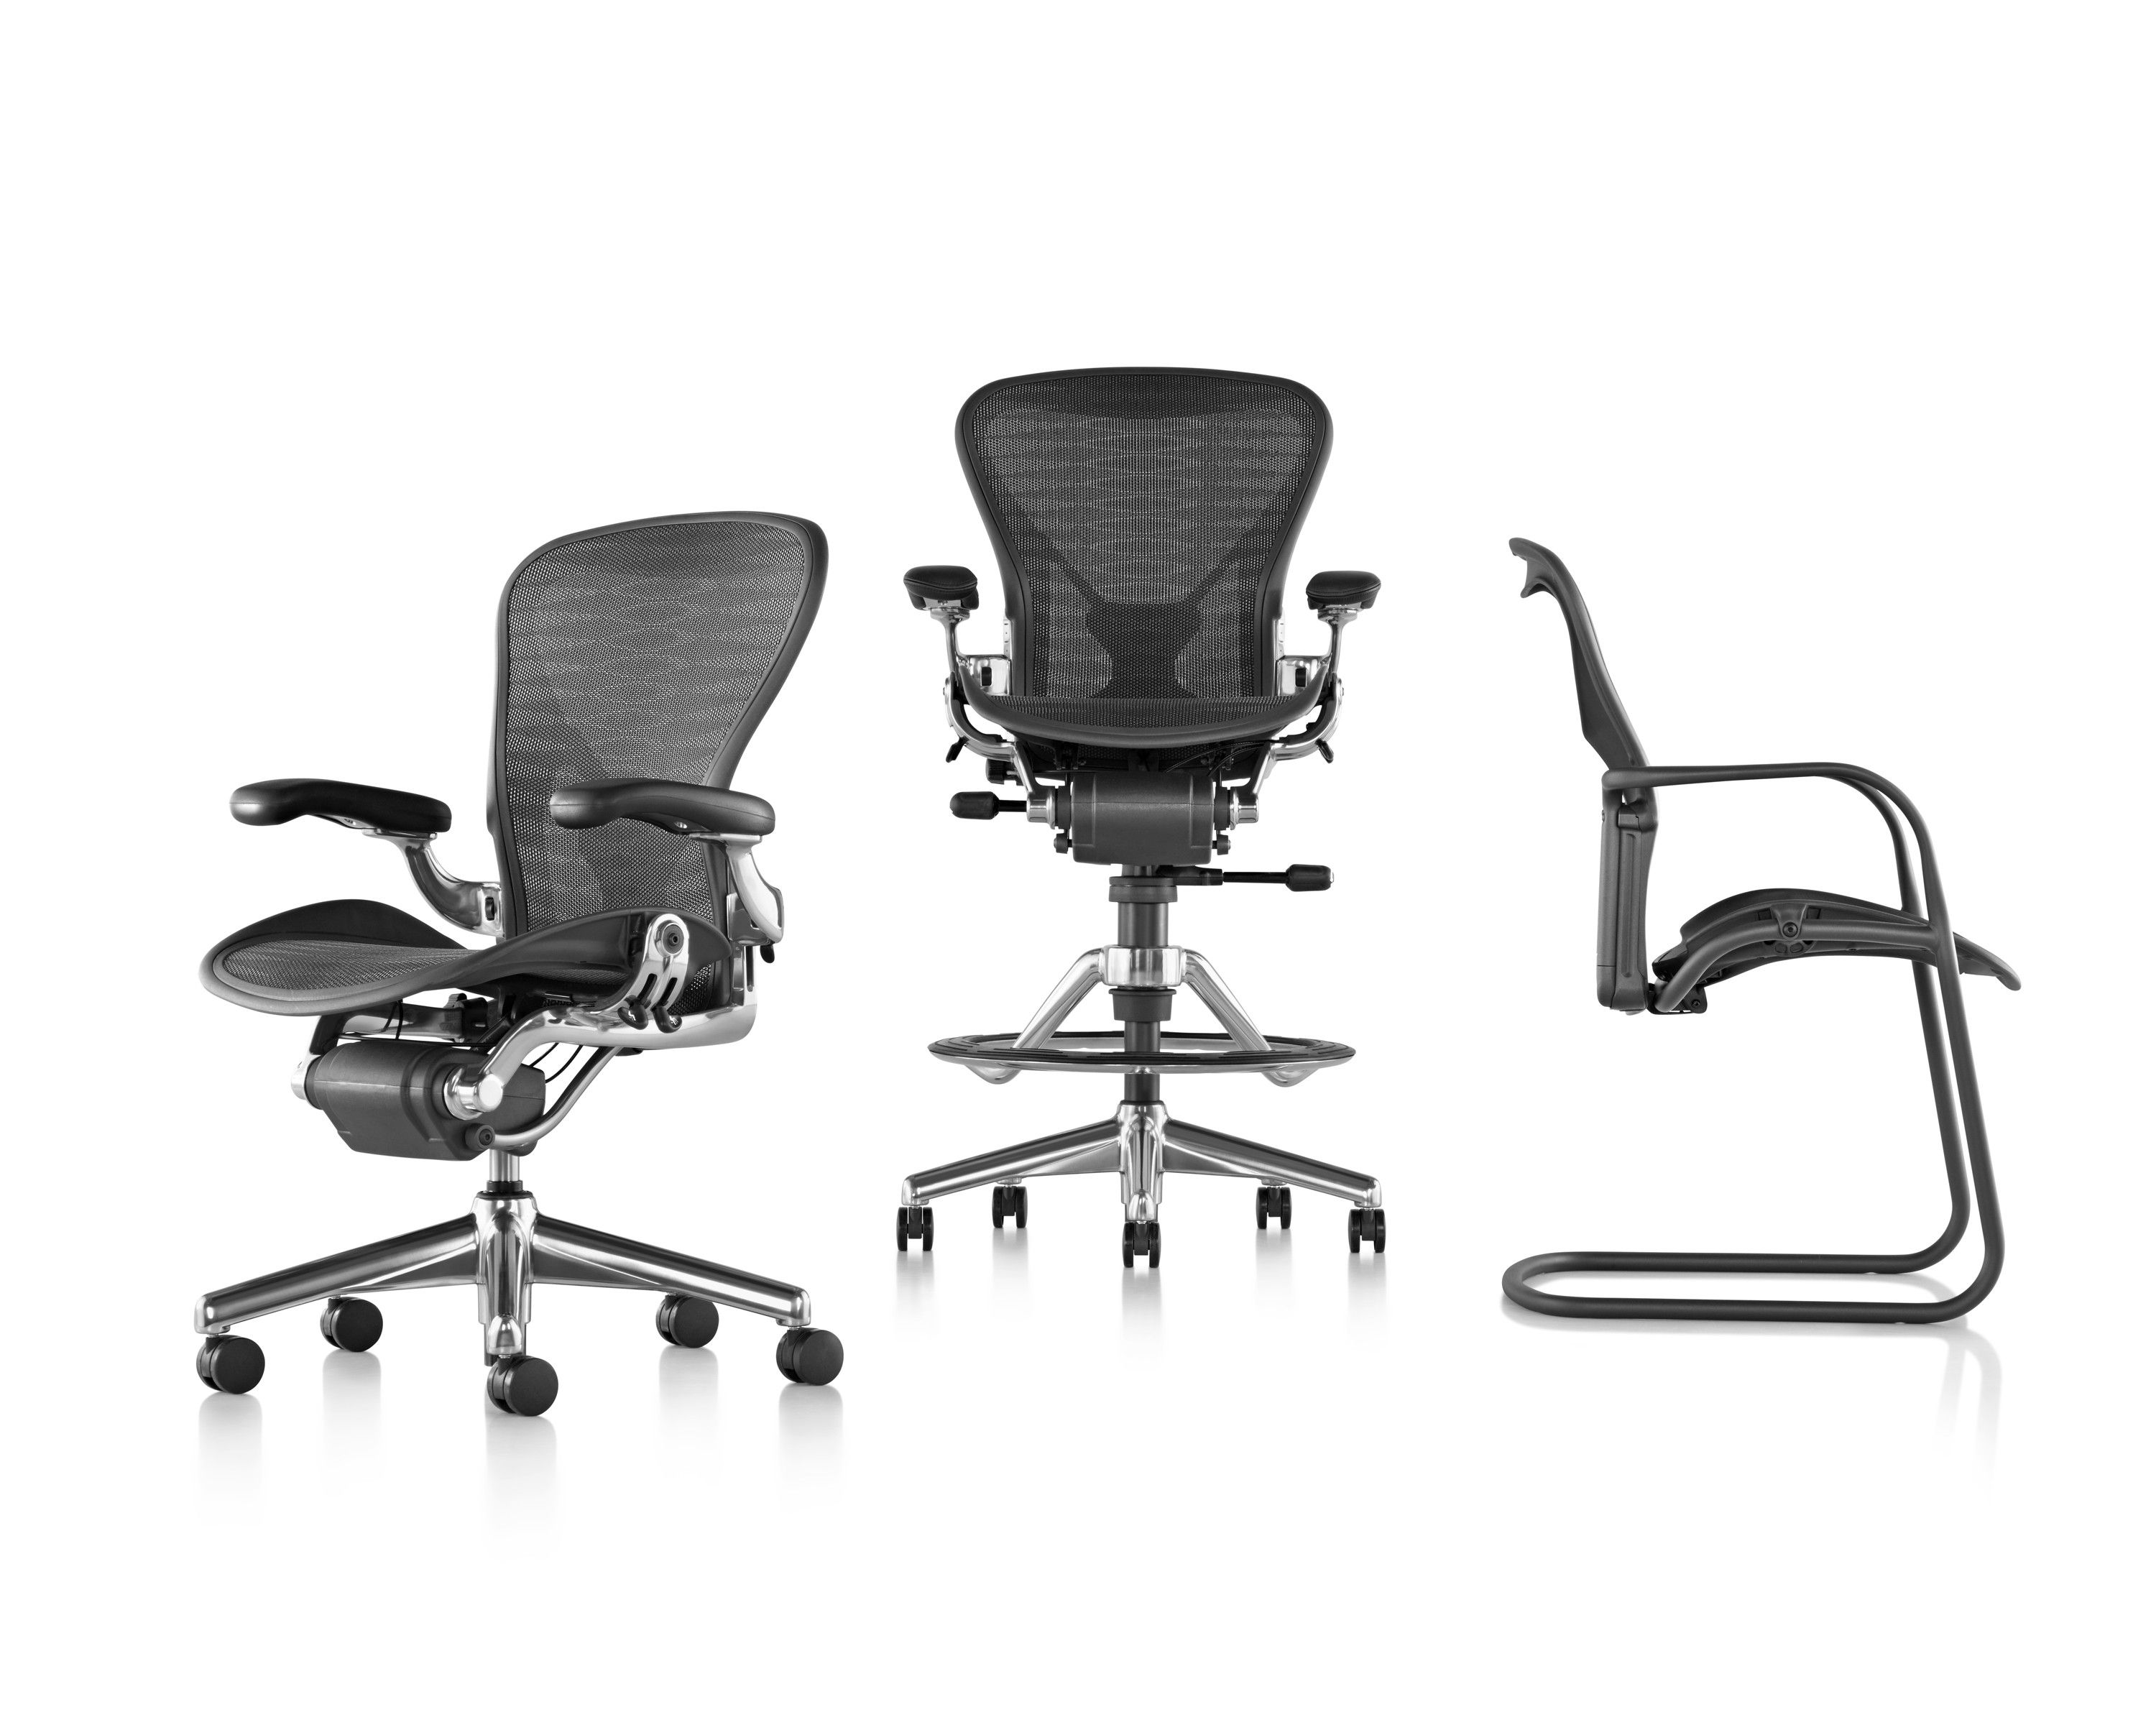 Buying An Aeron Chair Read This First Office Designs Blog Lounge Chair Outdoor Chair Adirondack Chair Plans